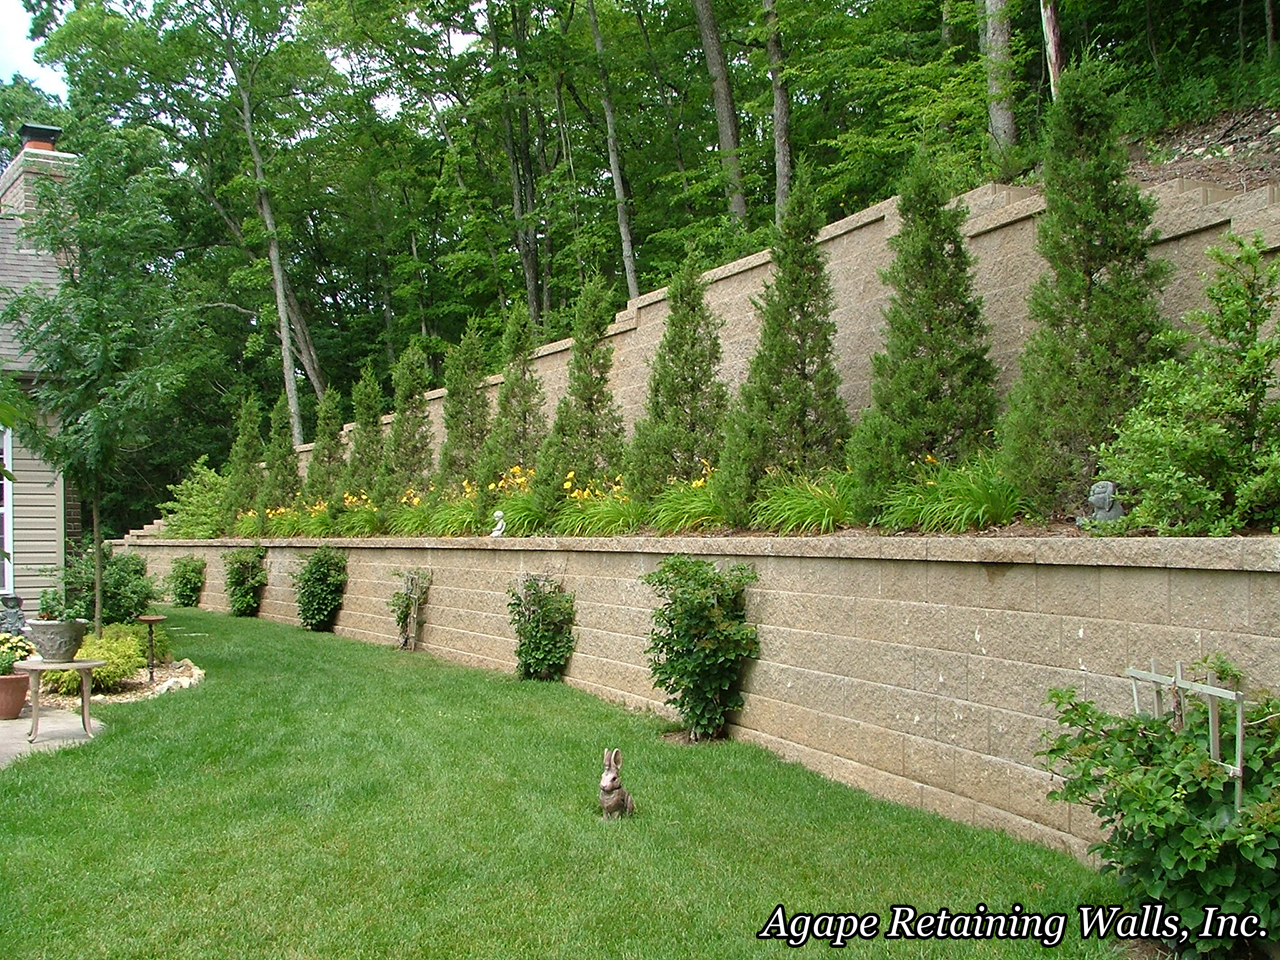 Agape retaining walls inc terrace photo album 2 for Landscape retaining wall design